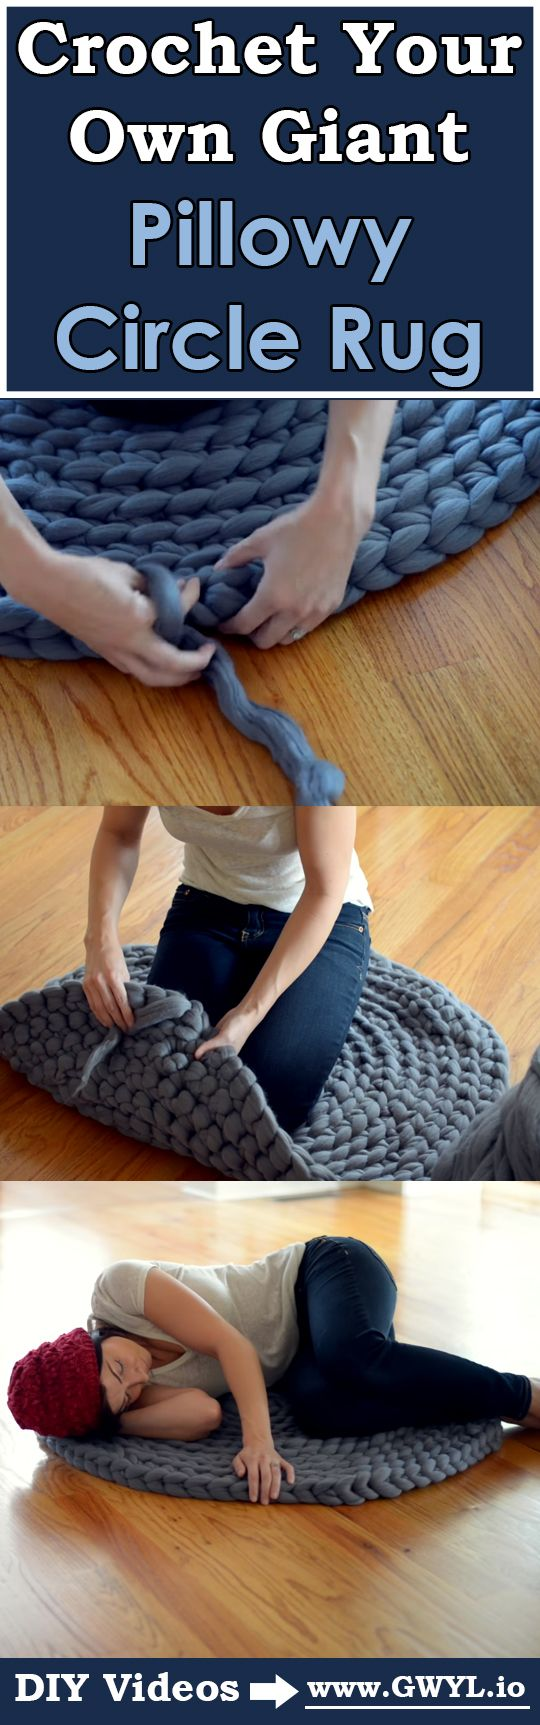 Here's a detailed tutorial on how to make your very own roving rug! | Crochet Your Own Giant Pillowy Circle Rug | Watch the video and written instructions here: http://gwyl.io/crochet-giant-pillowy-circle-rug/